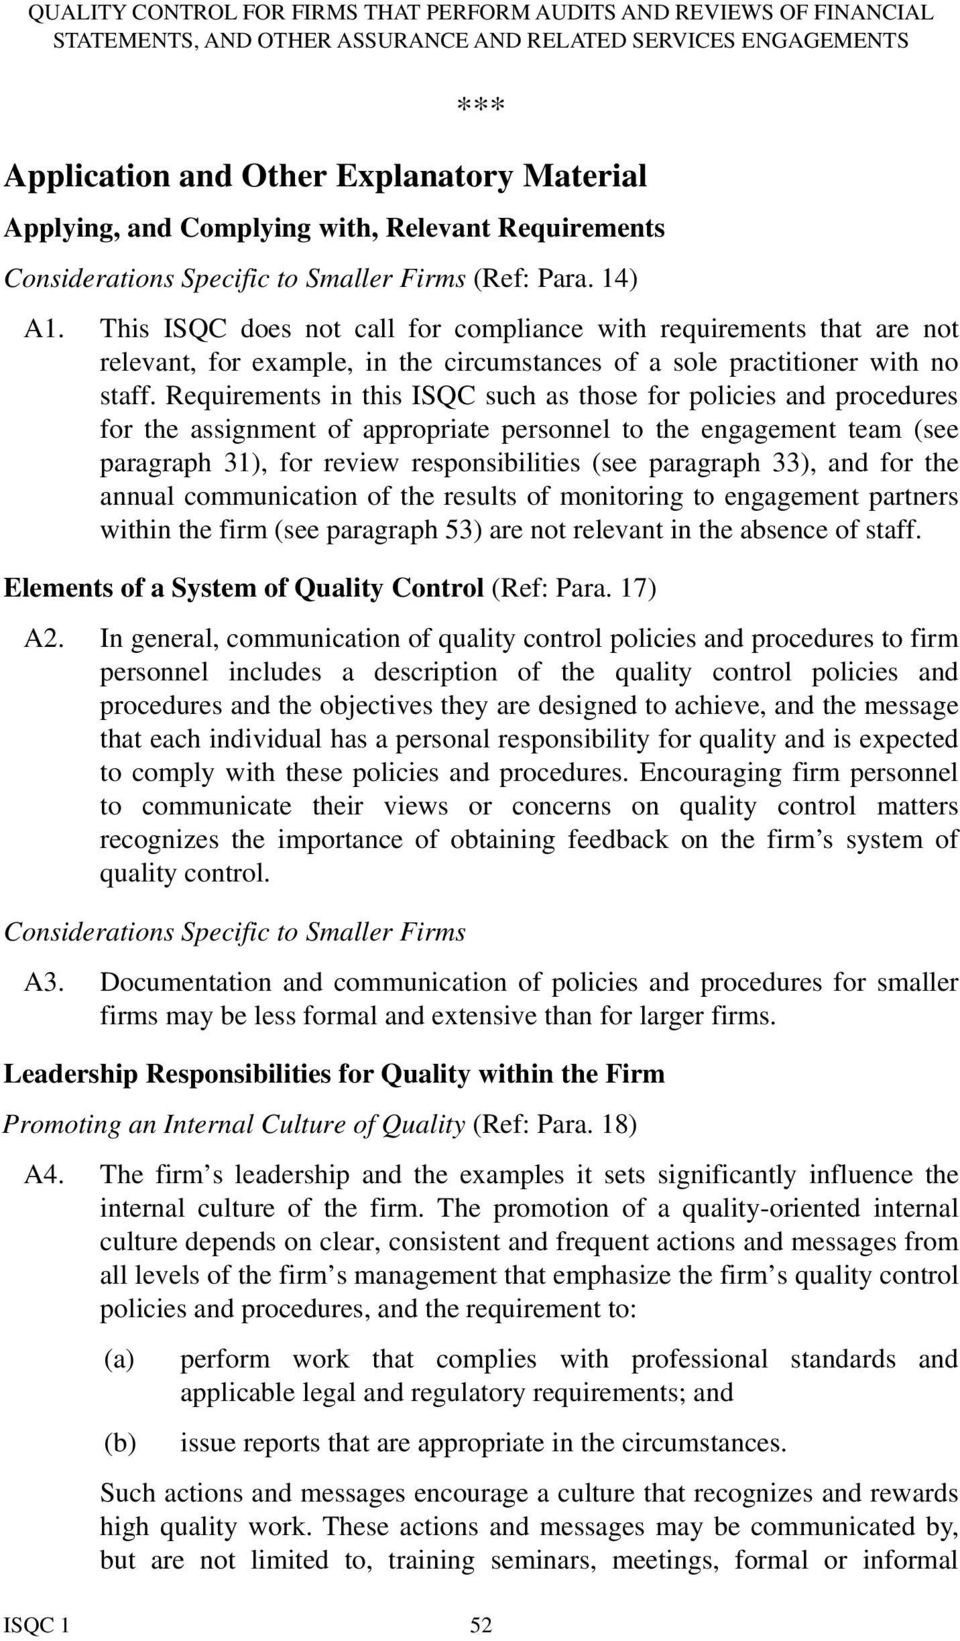 Requirements in this ISQC such as those for policies and procedures for the assignment of appropriate personnel to the engagement team (see paragraph 31), for review responsibilities (see paragraph